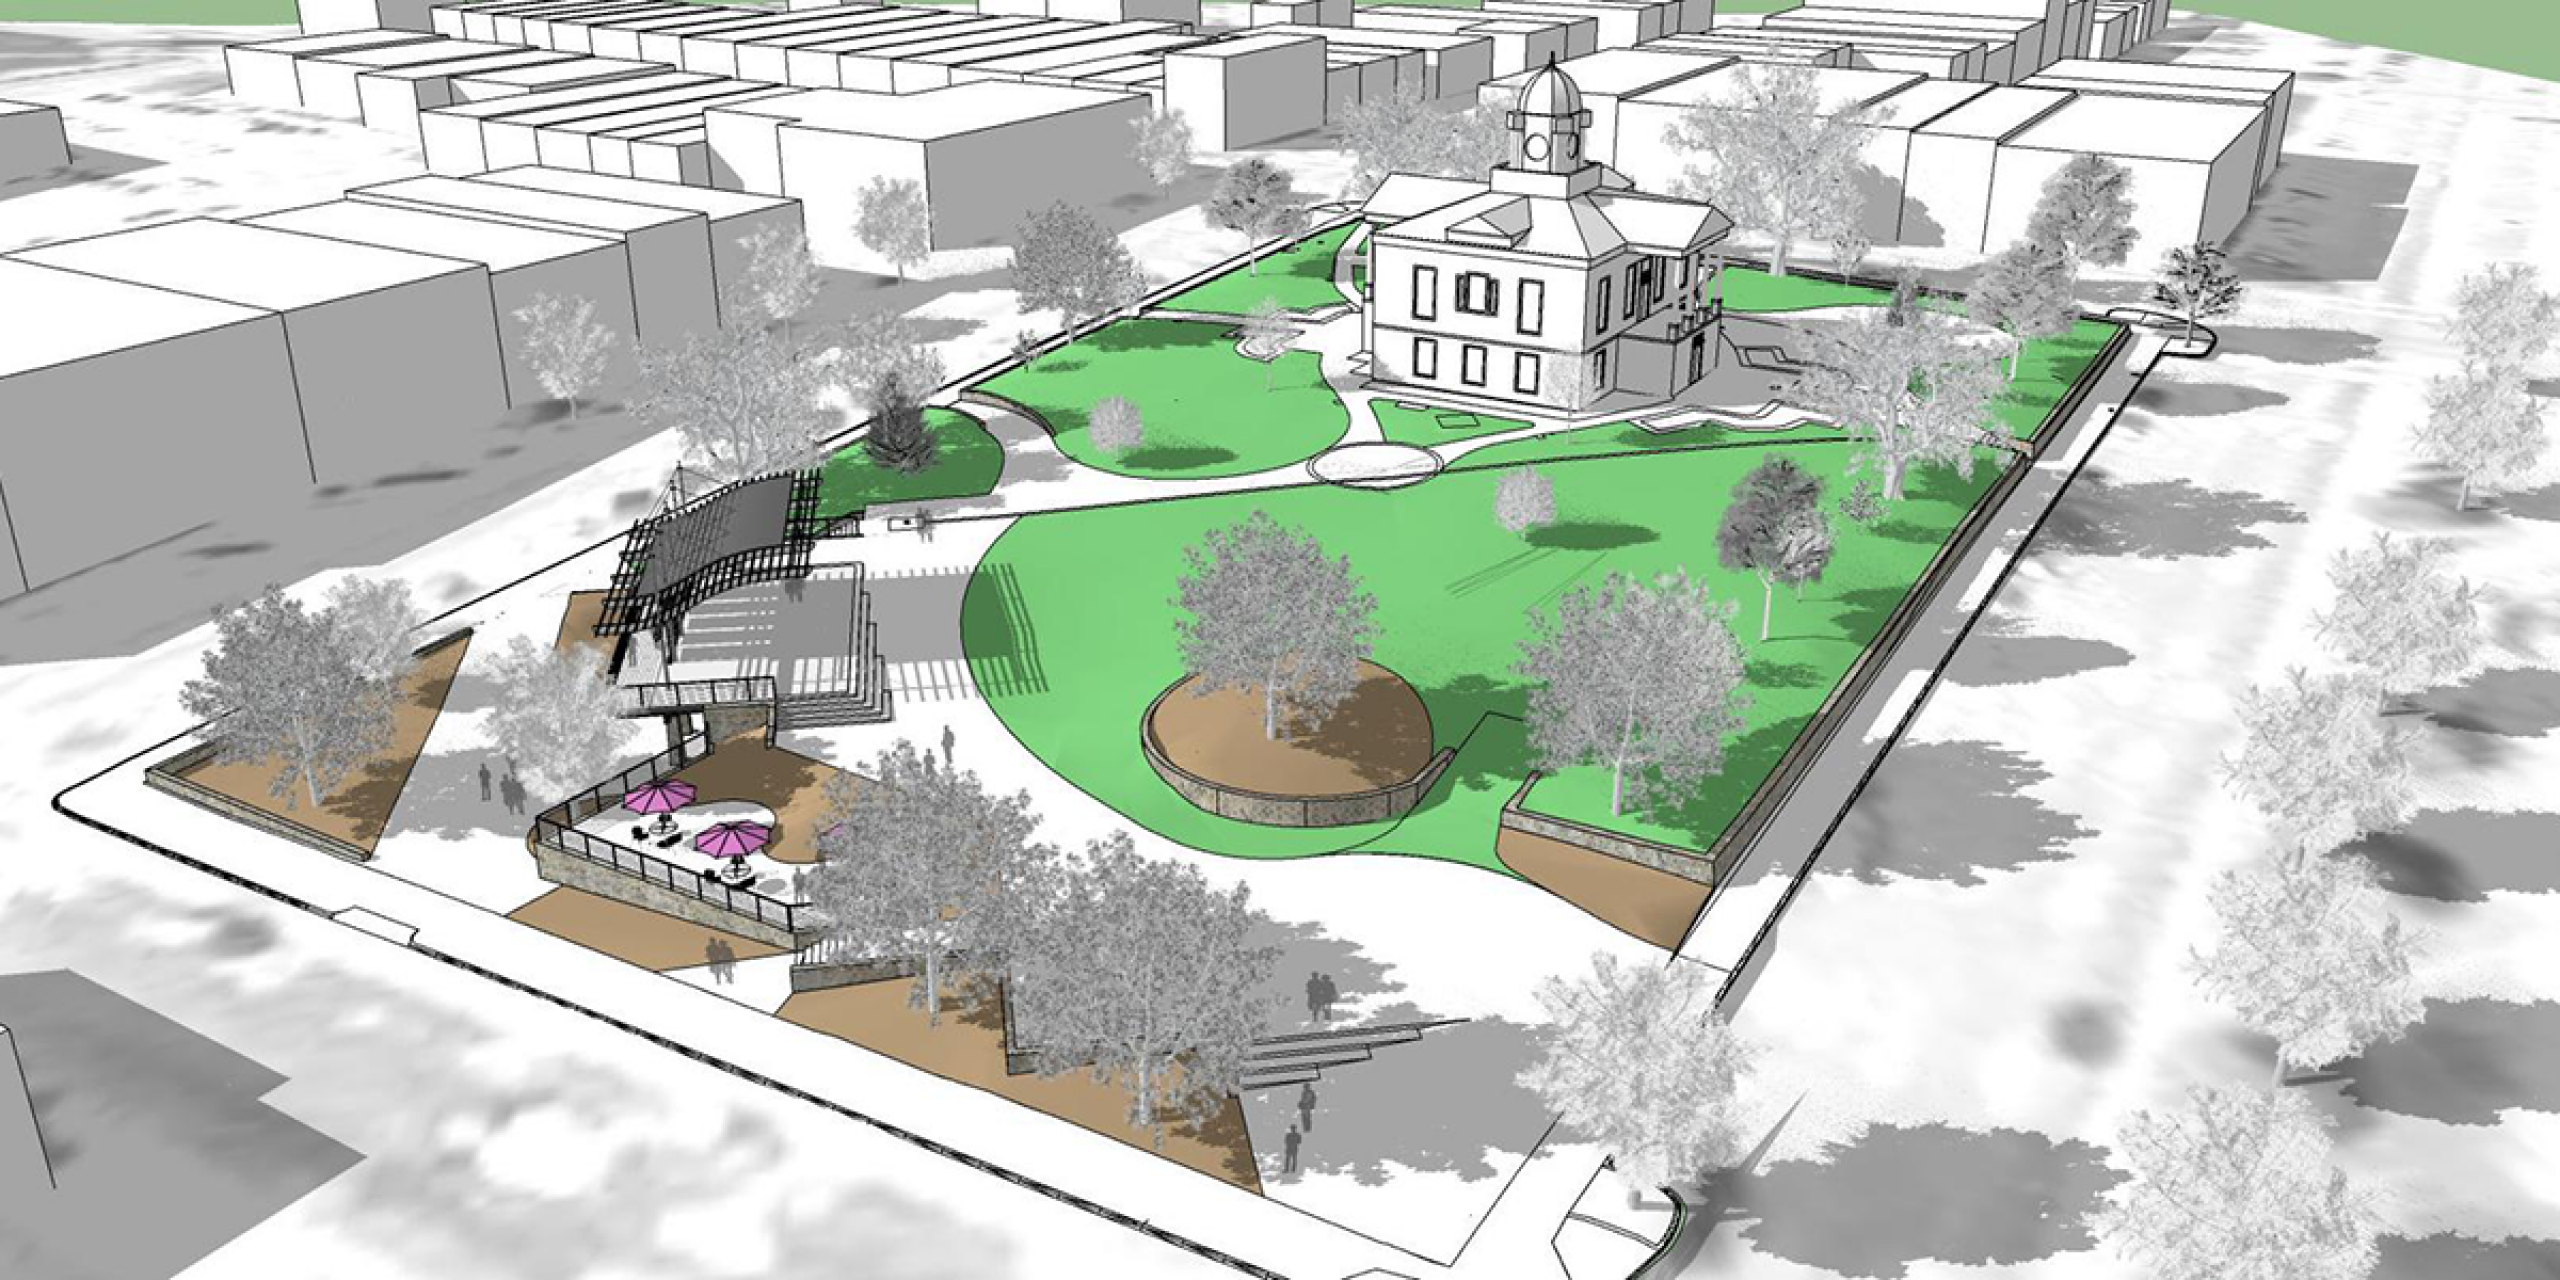 Rendering of Courthouse Square courtesy of Stimmel Associates, P.A. and Stitch Design Shop